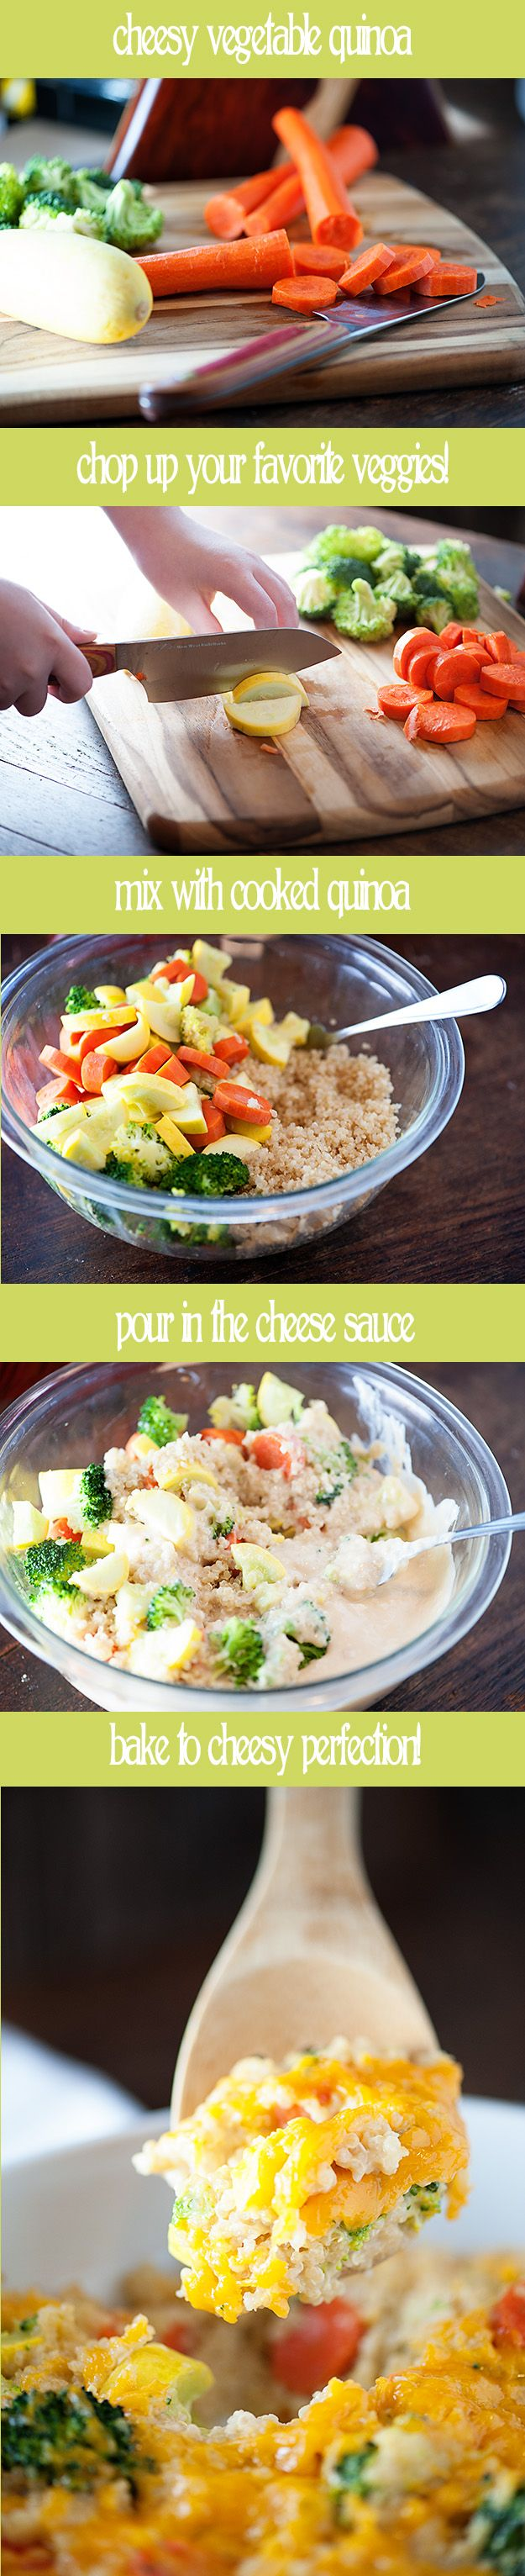 An easy weeknight recipe for a protein packed vegetable quinoa bake!